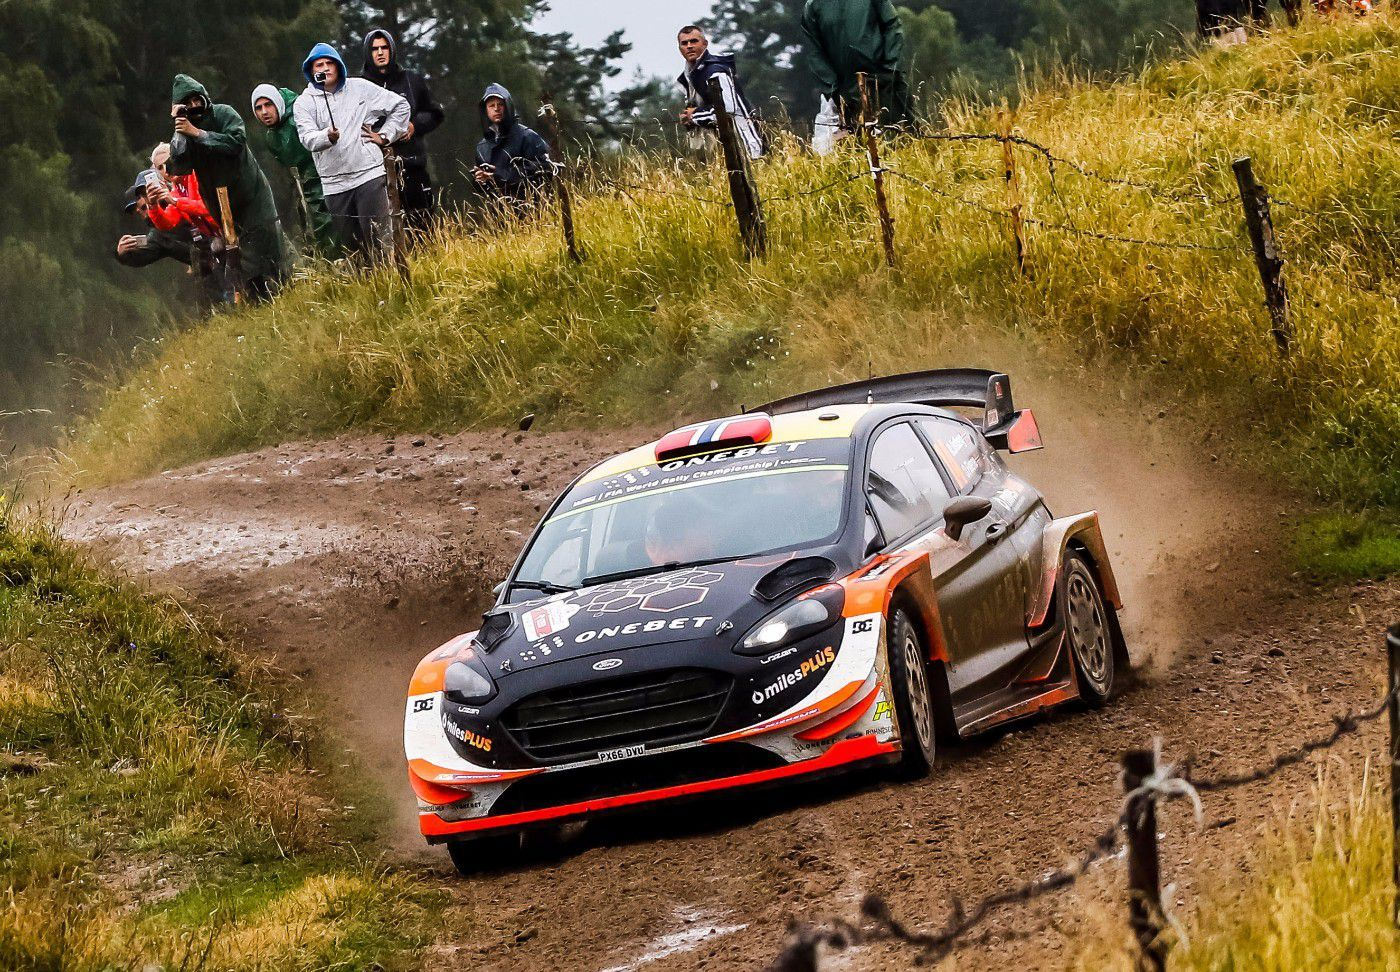 Ford Fiesta WRC 2017 Gravel or Tarmac Car has been used by Mads ...